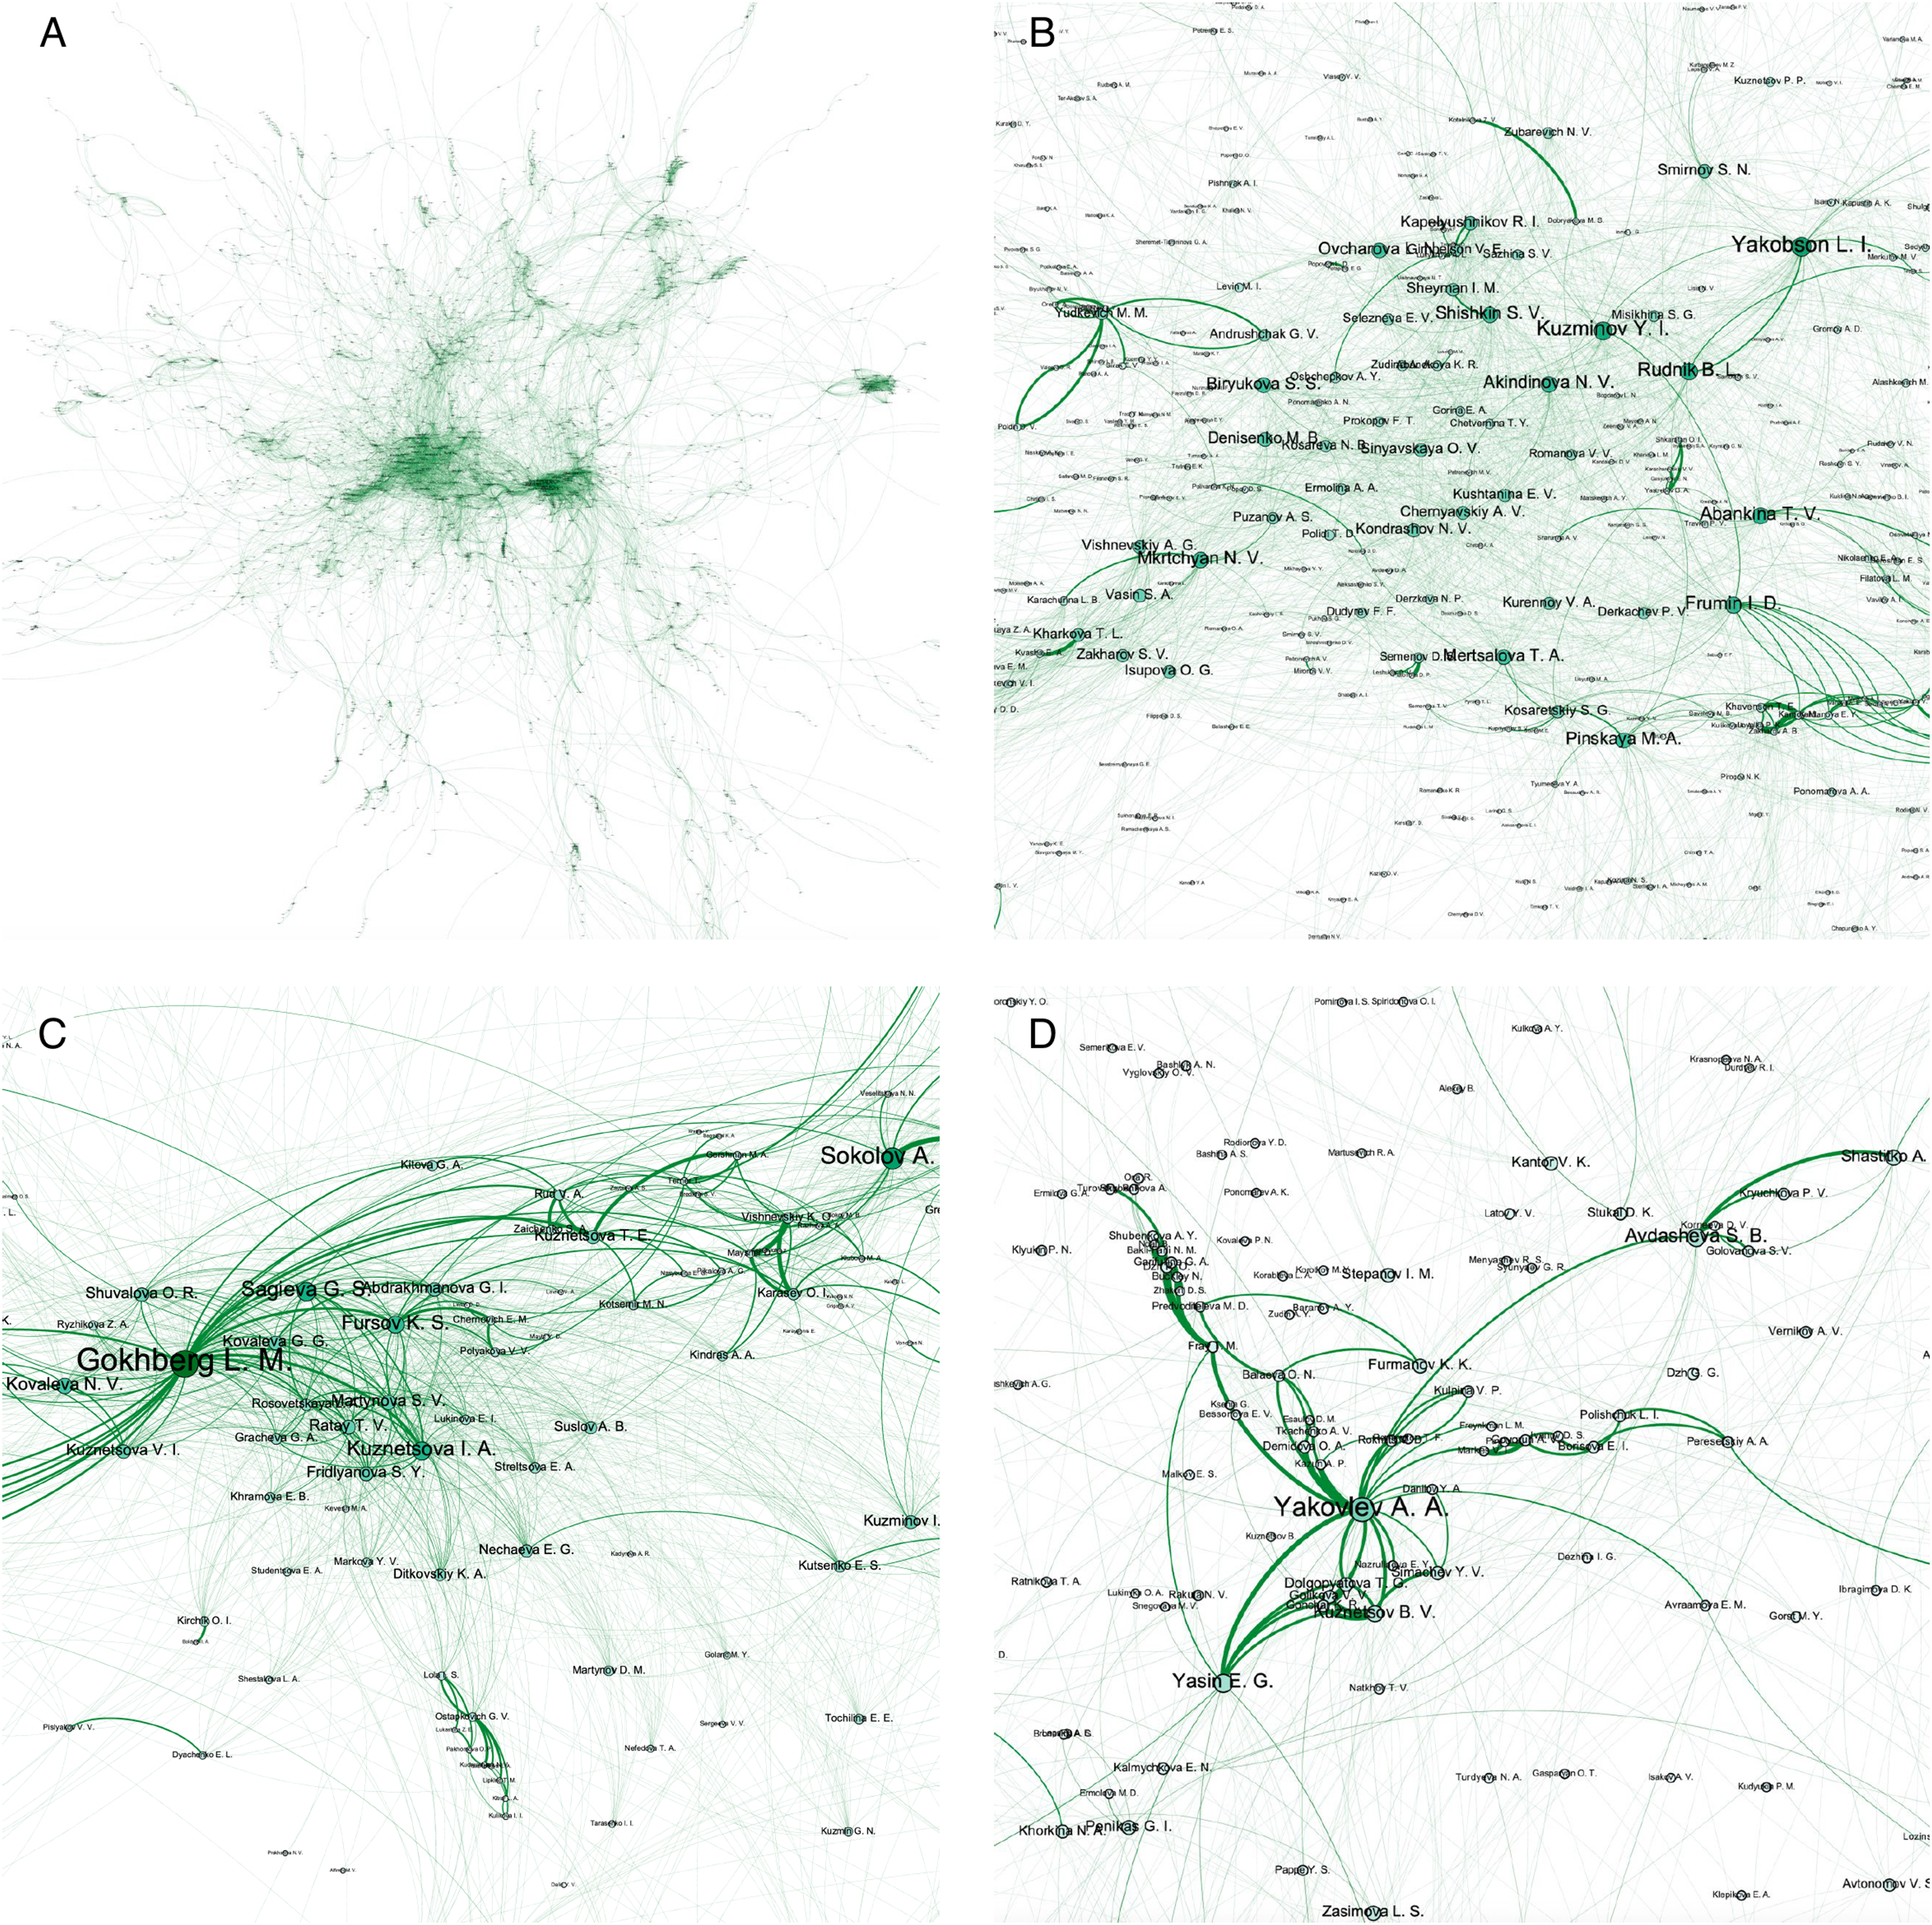 Dual network embedding for representing research interests in the